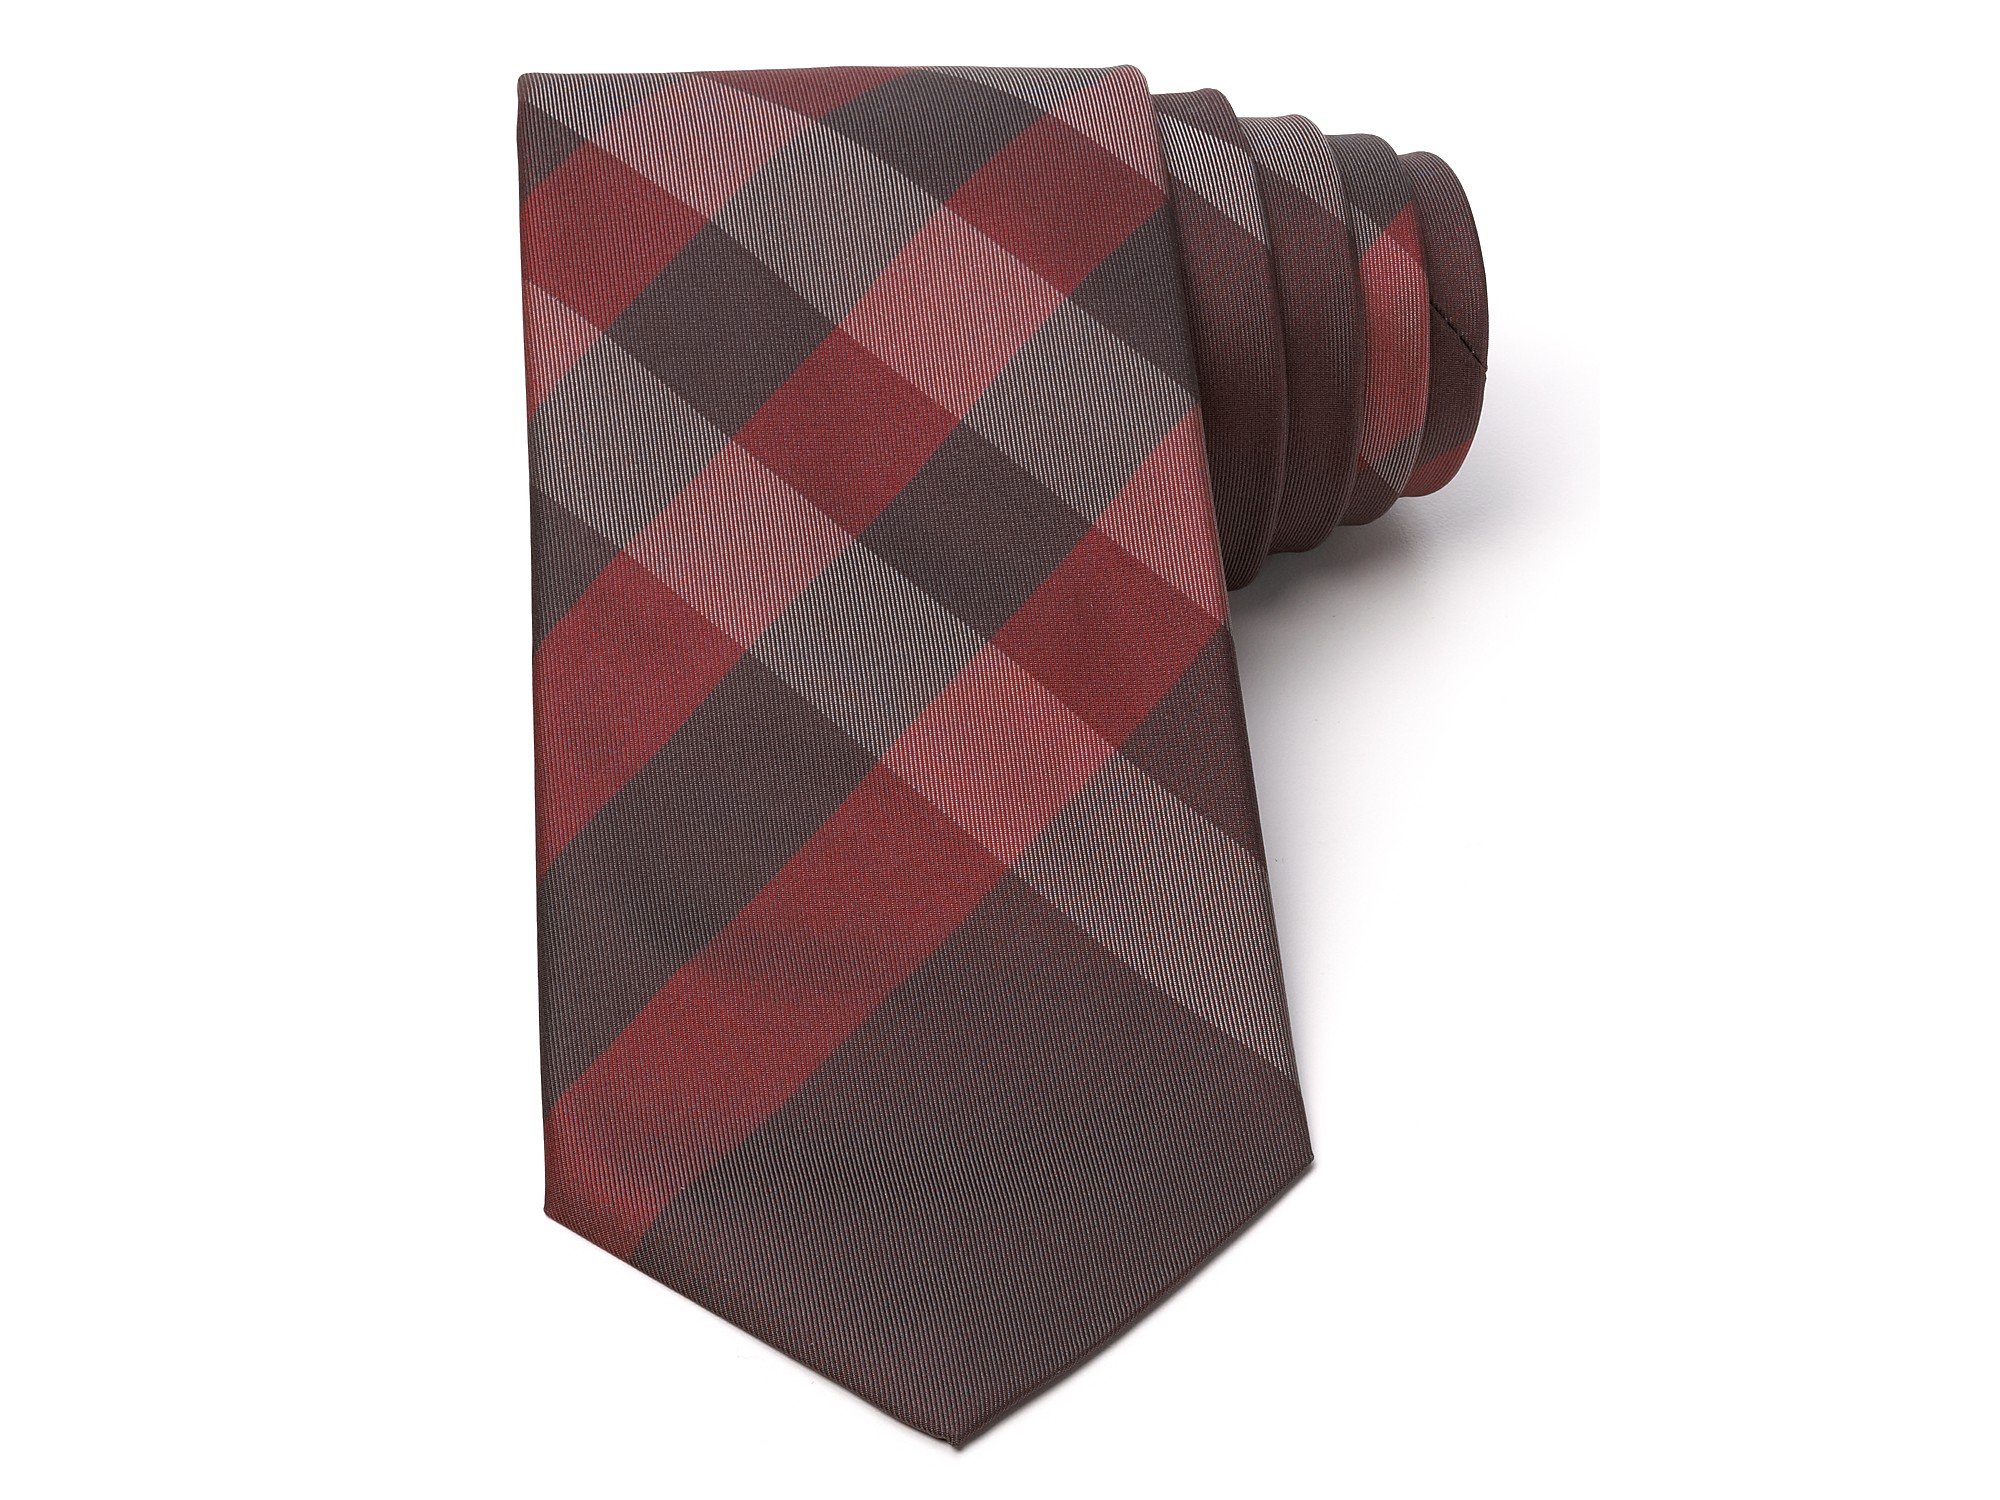 a560712ce995 ... uk lyst burberry london regent classic check tie in brown for men d4bb3  71ede